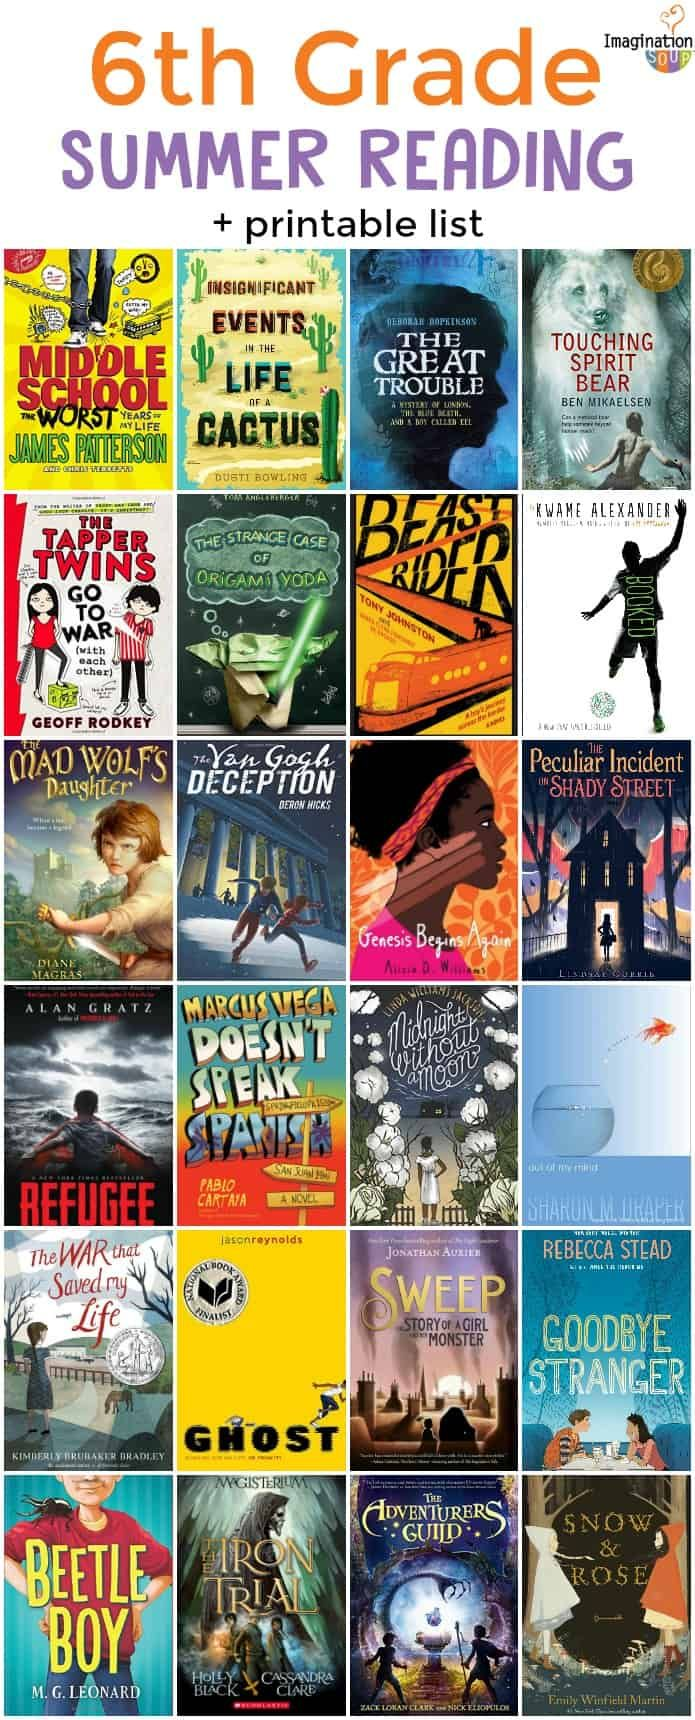 6th Grade Summer Reading List Ages 11 12 Sixth Grade Reading 6th Grade Reading Summer Reading Lists What books should grade be reading